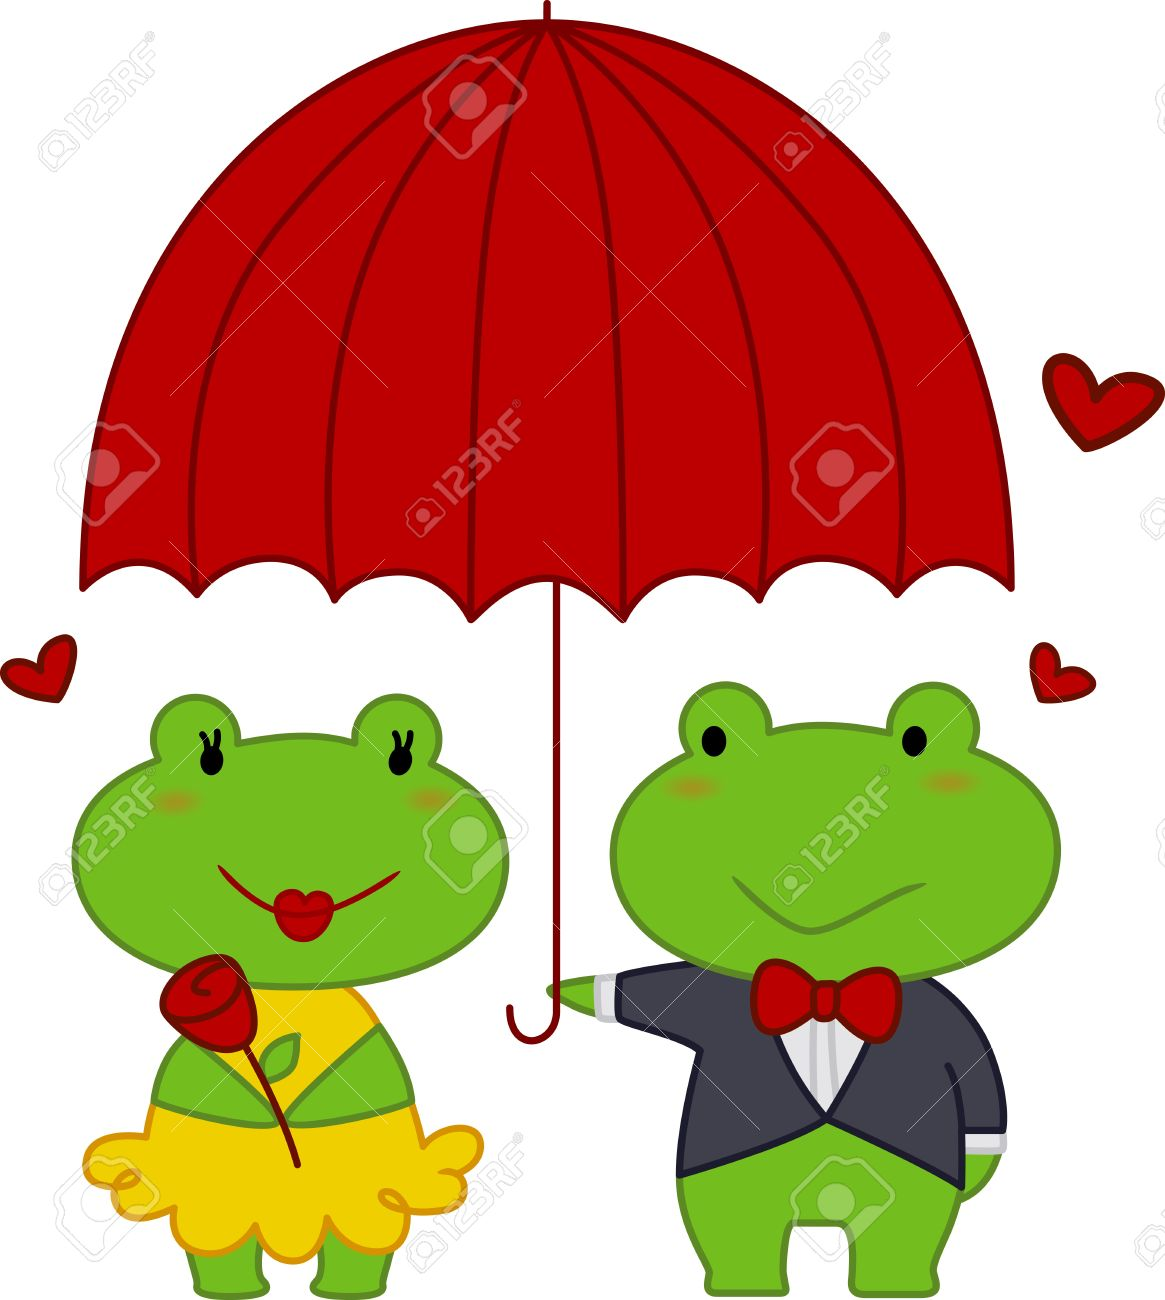 Illustration of a Male Frog Holding an Umbrella For the Female Frog Stock Illustration - 8756783